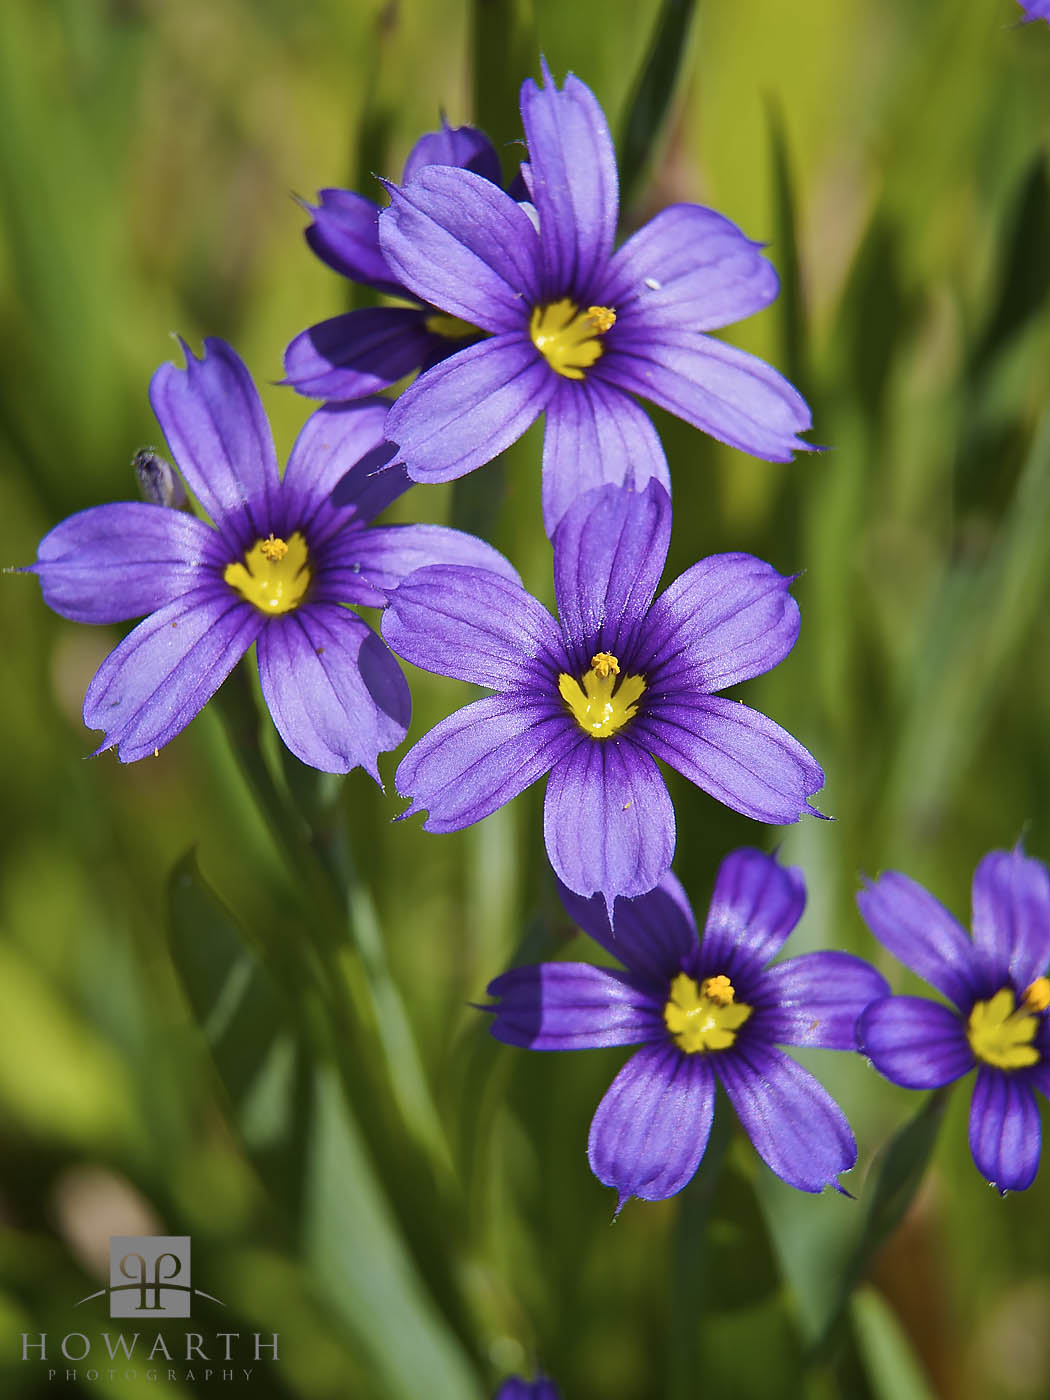 Bermudiana's bloom in the spring and are an incredibly hearty flower, often found in very harsh locations from March through...